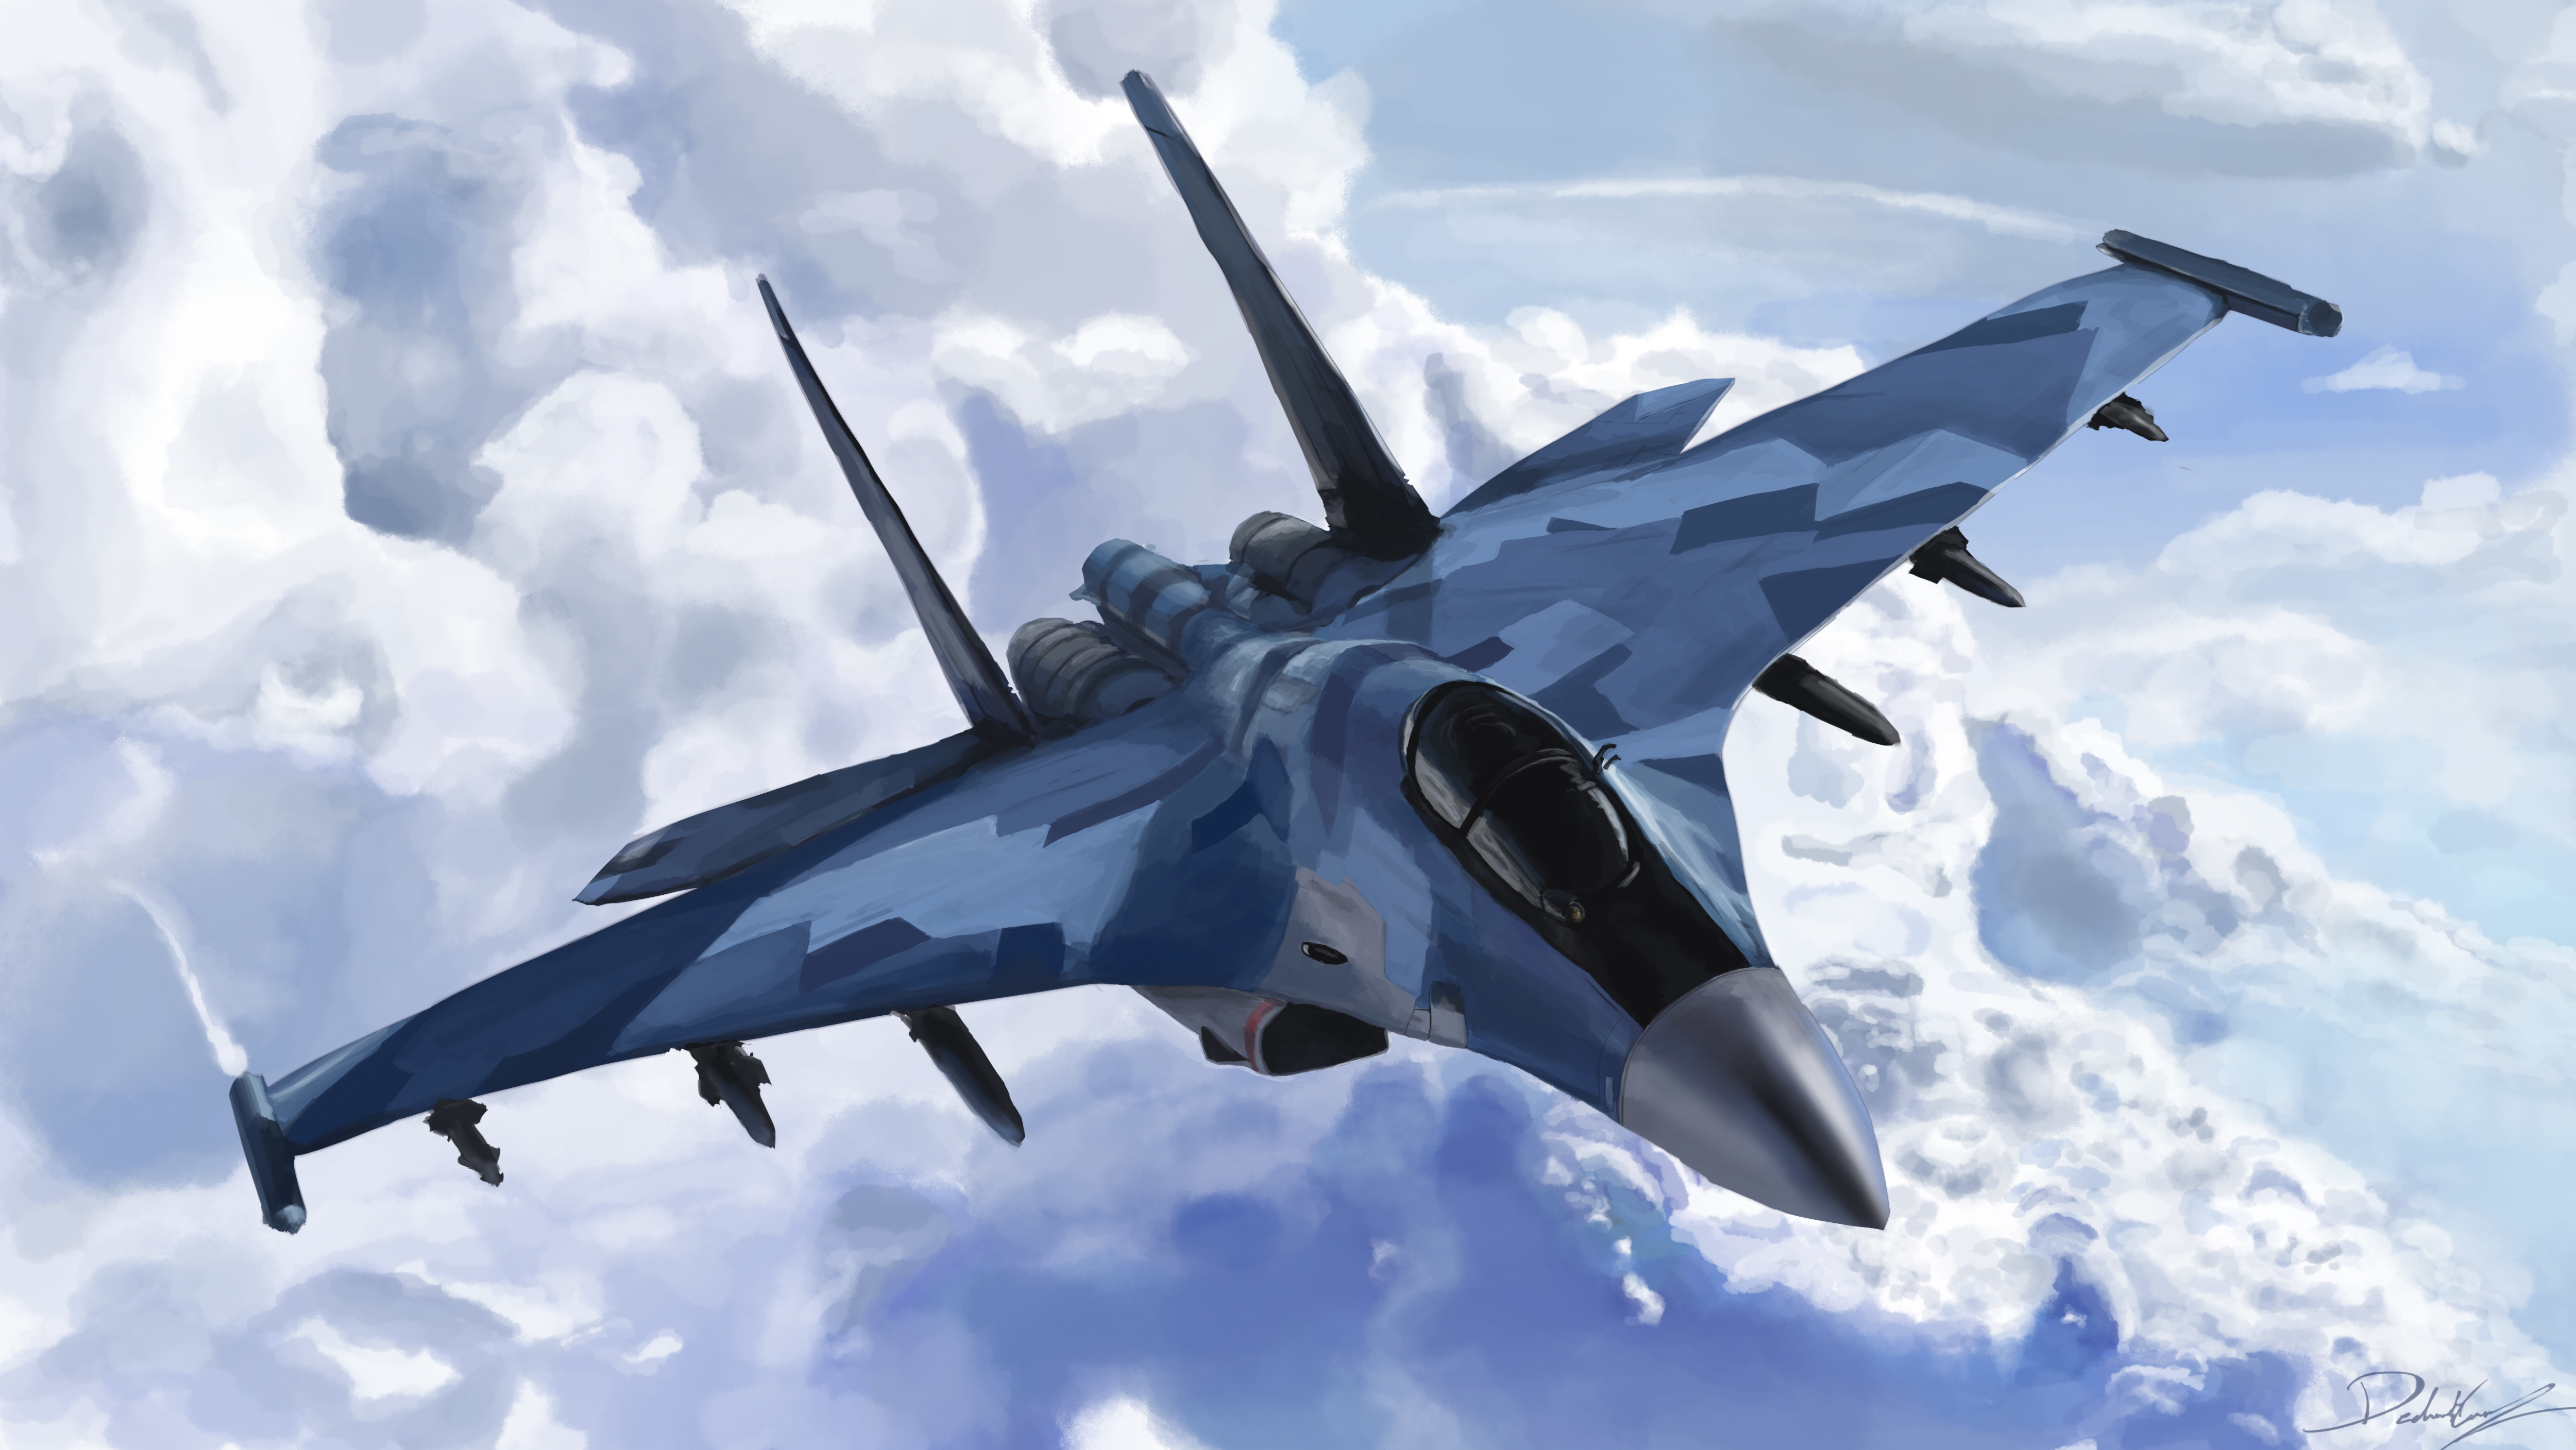 Su-35 fighter jets airplane military